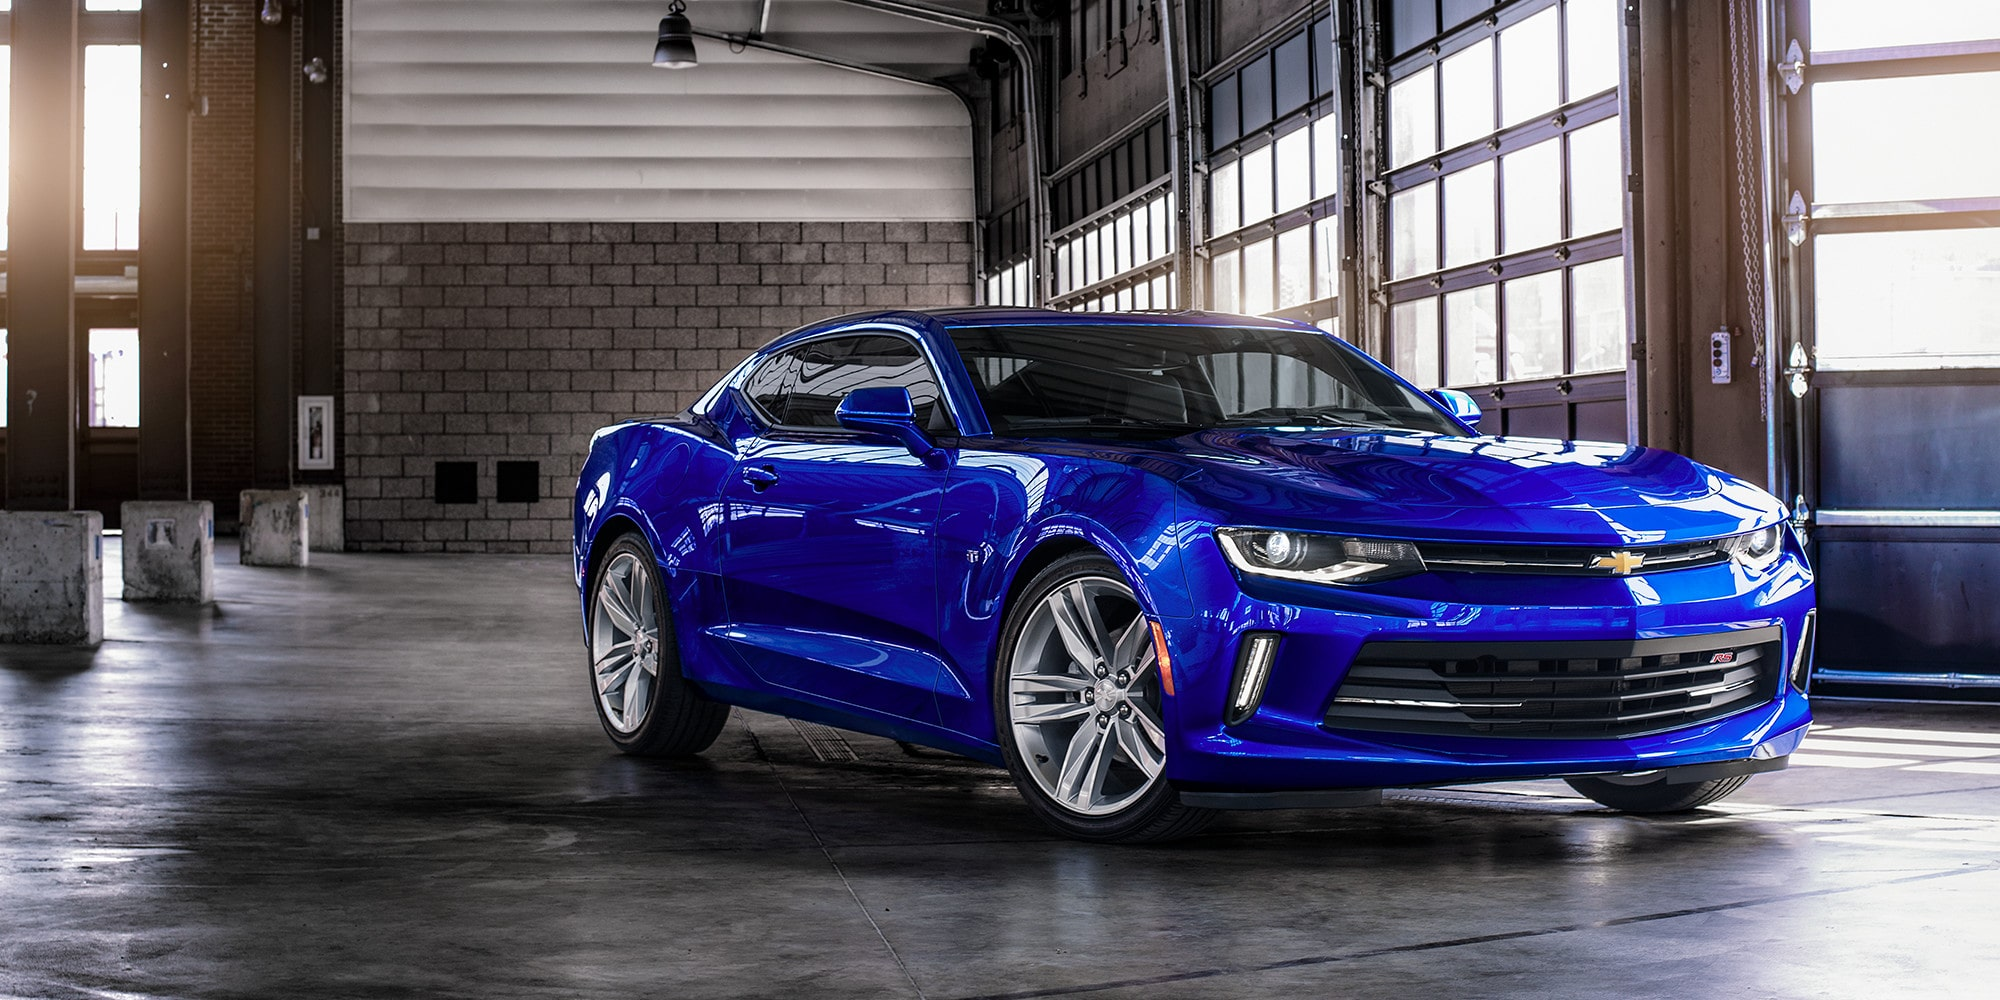 2018 Ford Mustang compared with the 2018 Chevrolet Camaro